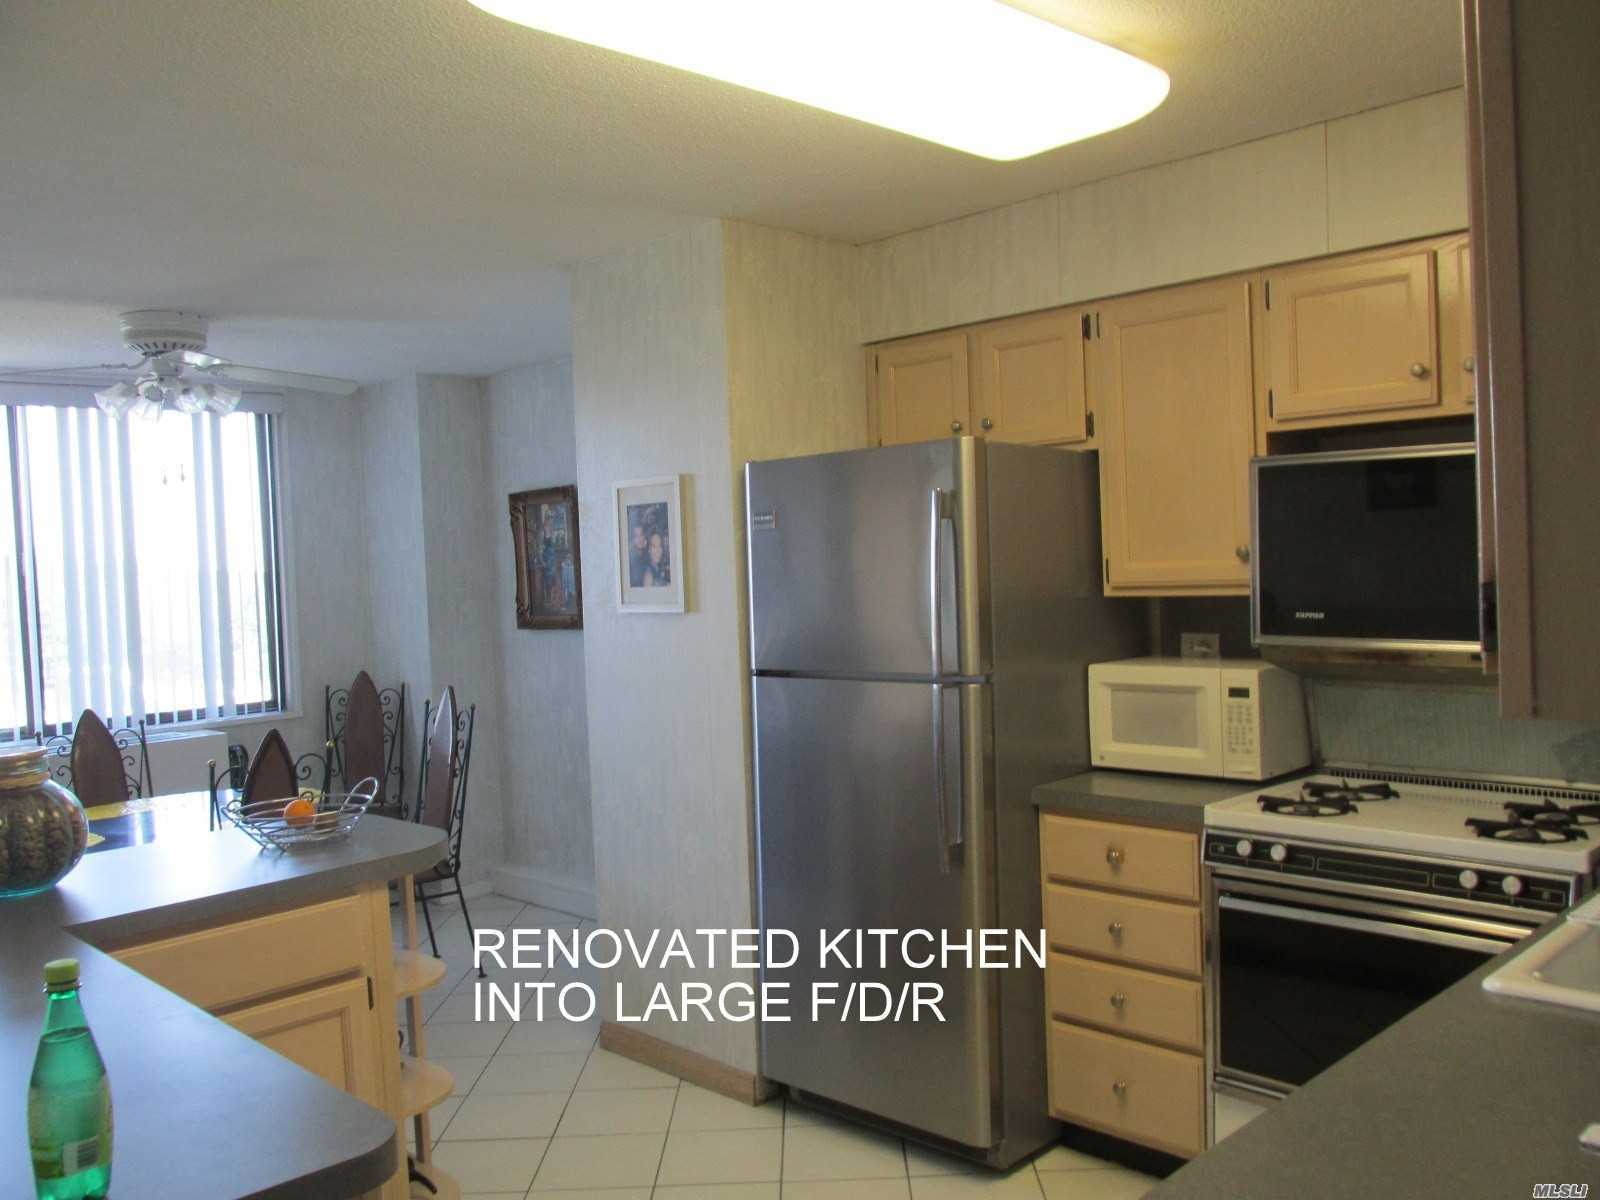 Deluxe Two Bedroom/Two Bath Plus Terrace; Formal Dining Room; Updated Over Sized Eat-In Kitchen; Two Updated Baths; Closets Galore; Terrace; Overlooks Quiet Garden View. Year Round Health/Fitness Club; Shopping Arcade; Restaurant On Premises; Deli; Beauty Salon;Dry Cleaners;Tennis Courts Plus Much More. Near Transportation And Shopping Center.